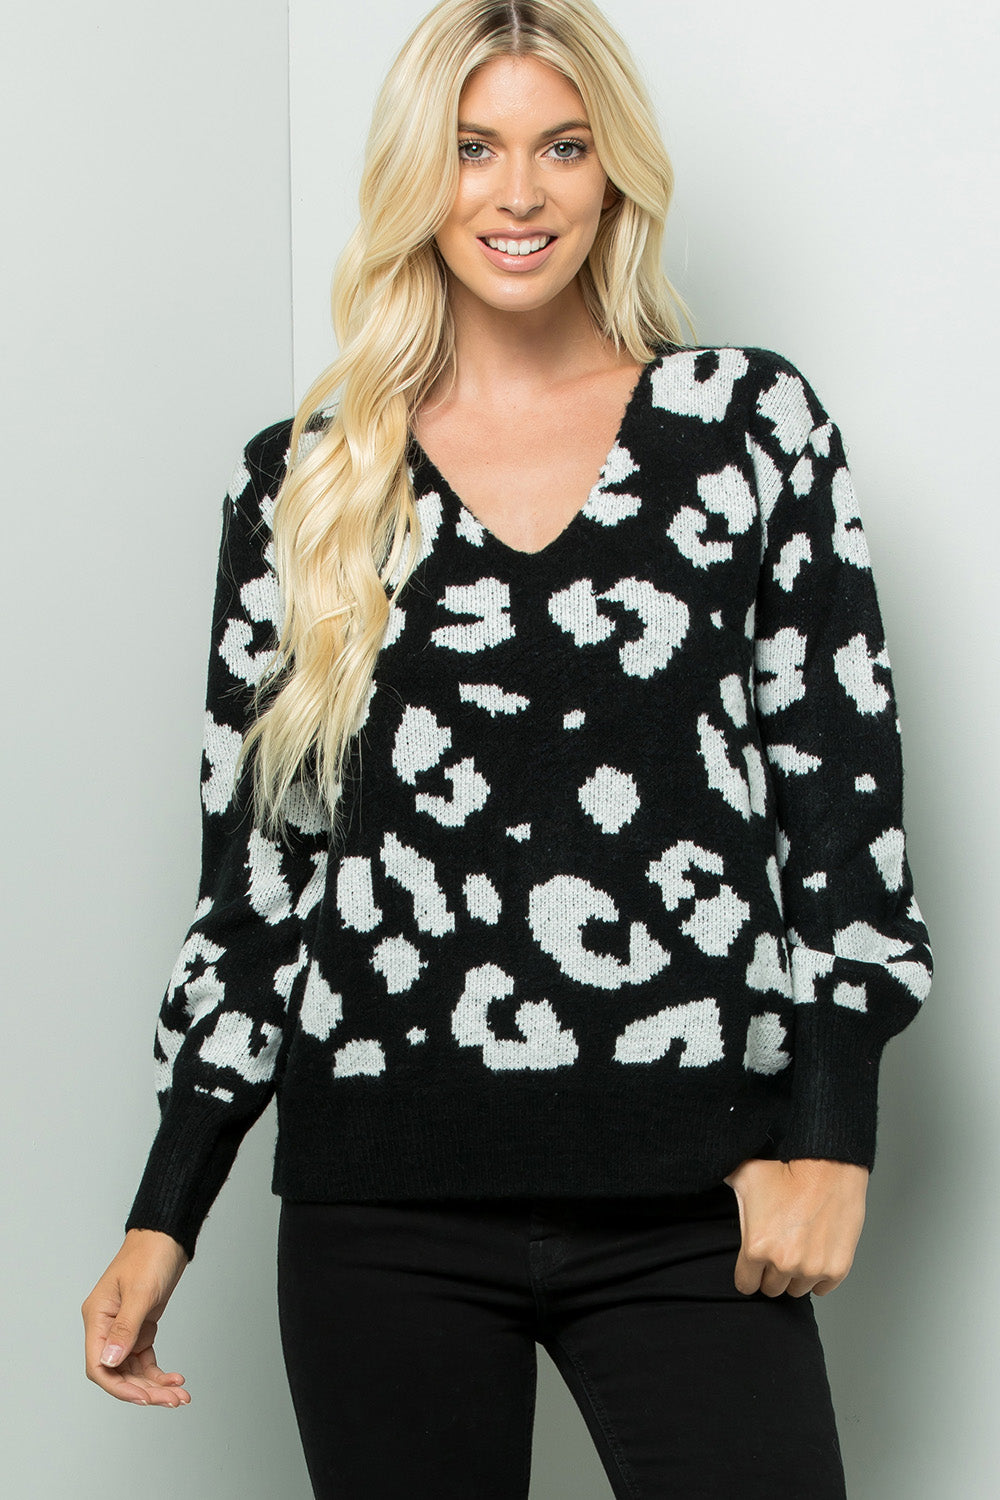 V-neck Bishop Sleeve Leopard Sweater Top - Black/Ivory